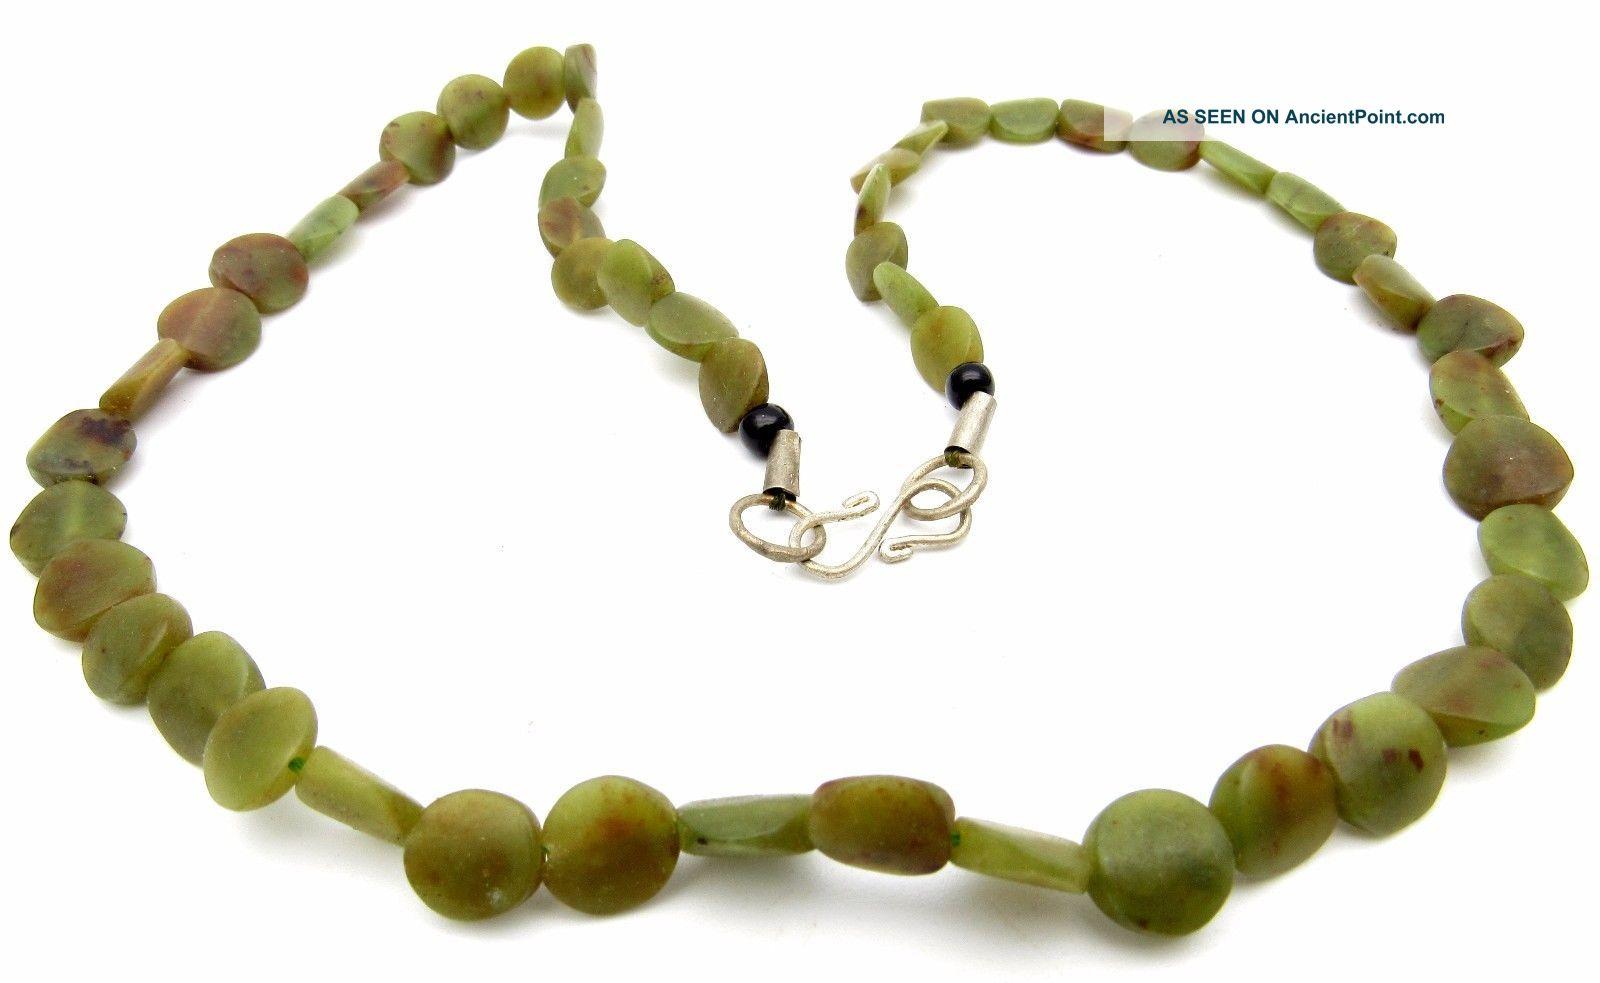 Ancient Glass Beaded Necklace - Very Rare Stunning Wearable Artifact - J168 Roman photo